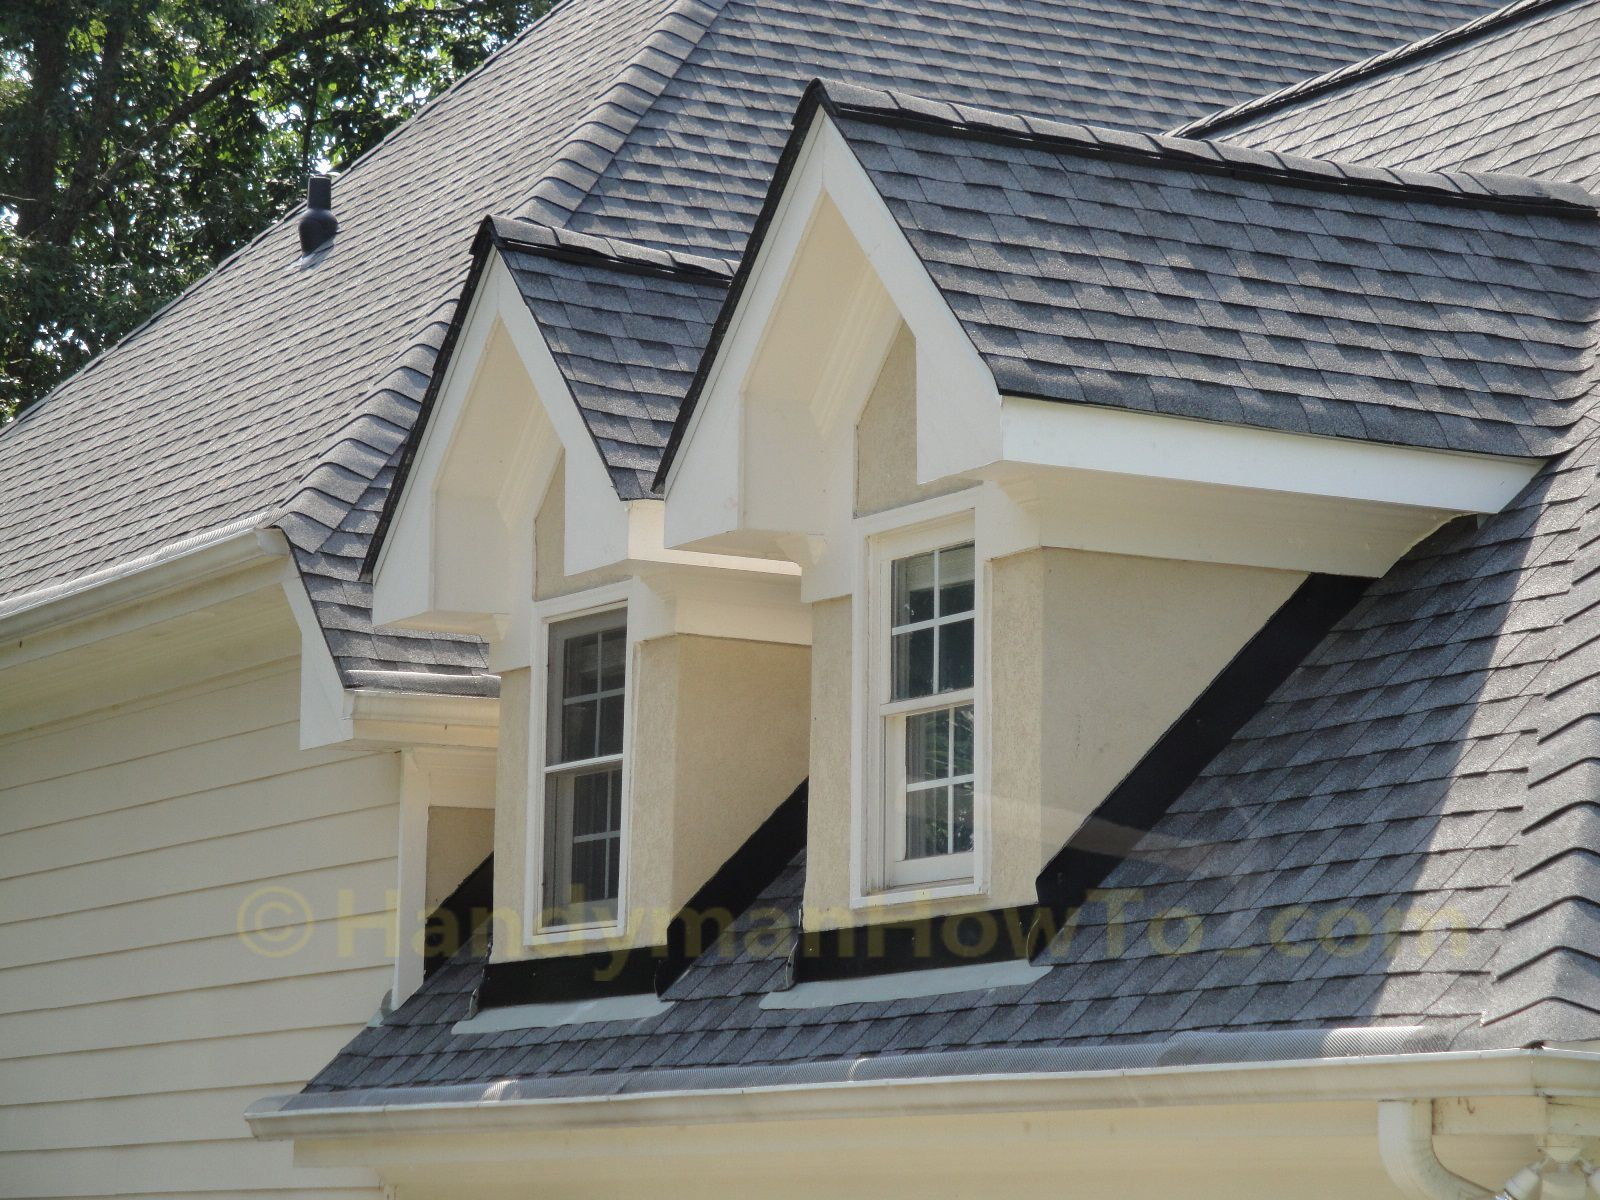 New roof installation dormer counter flashing dormers for New roof ideas